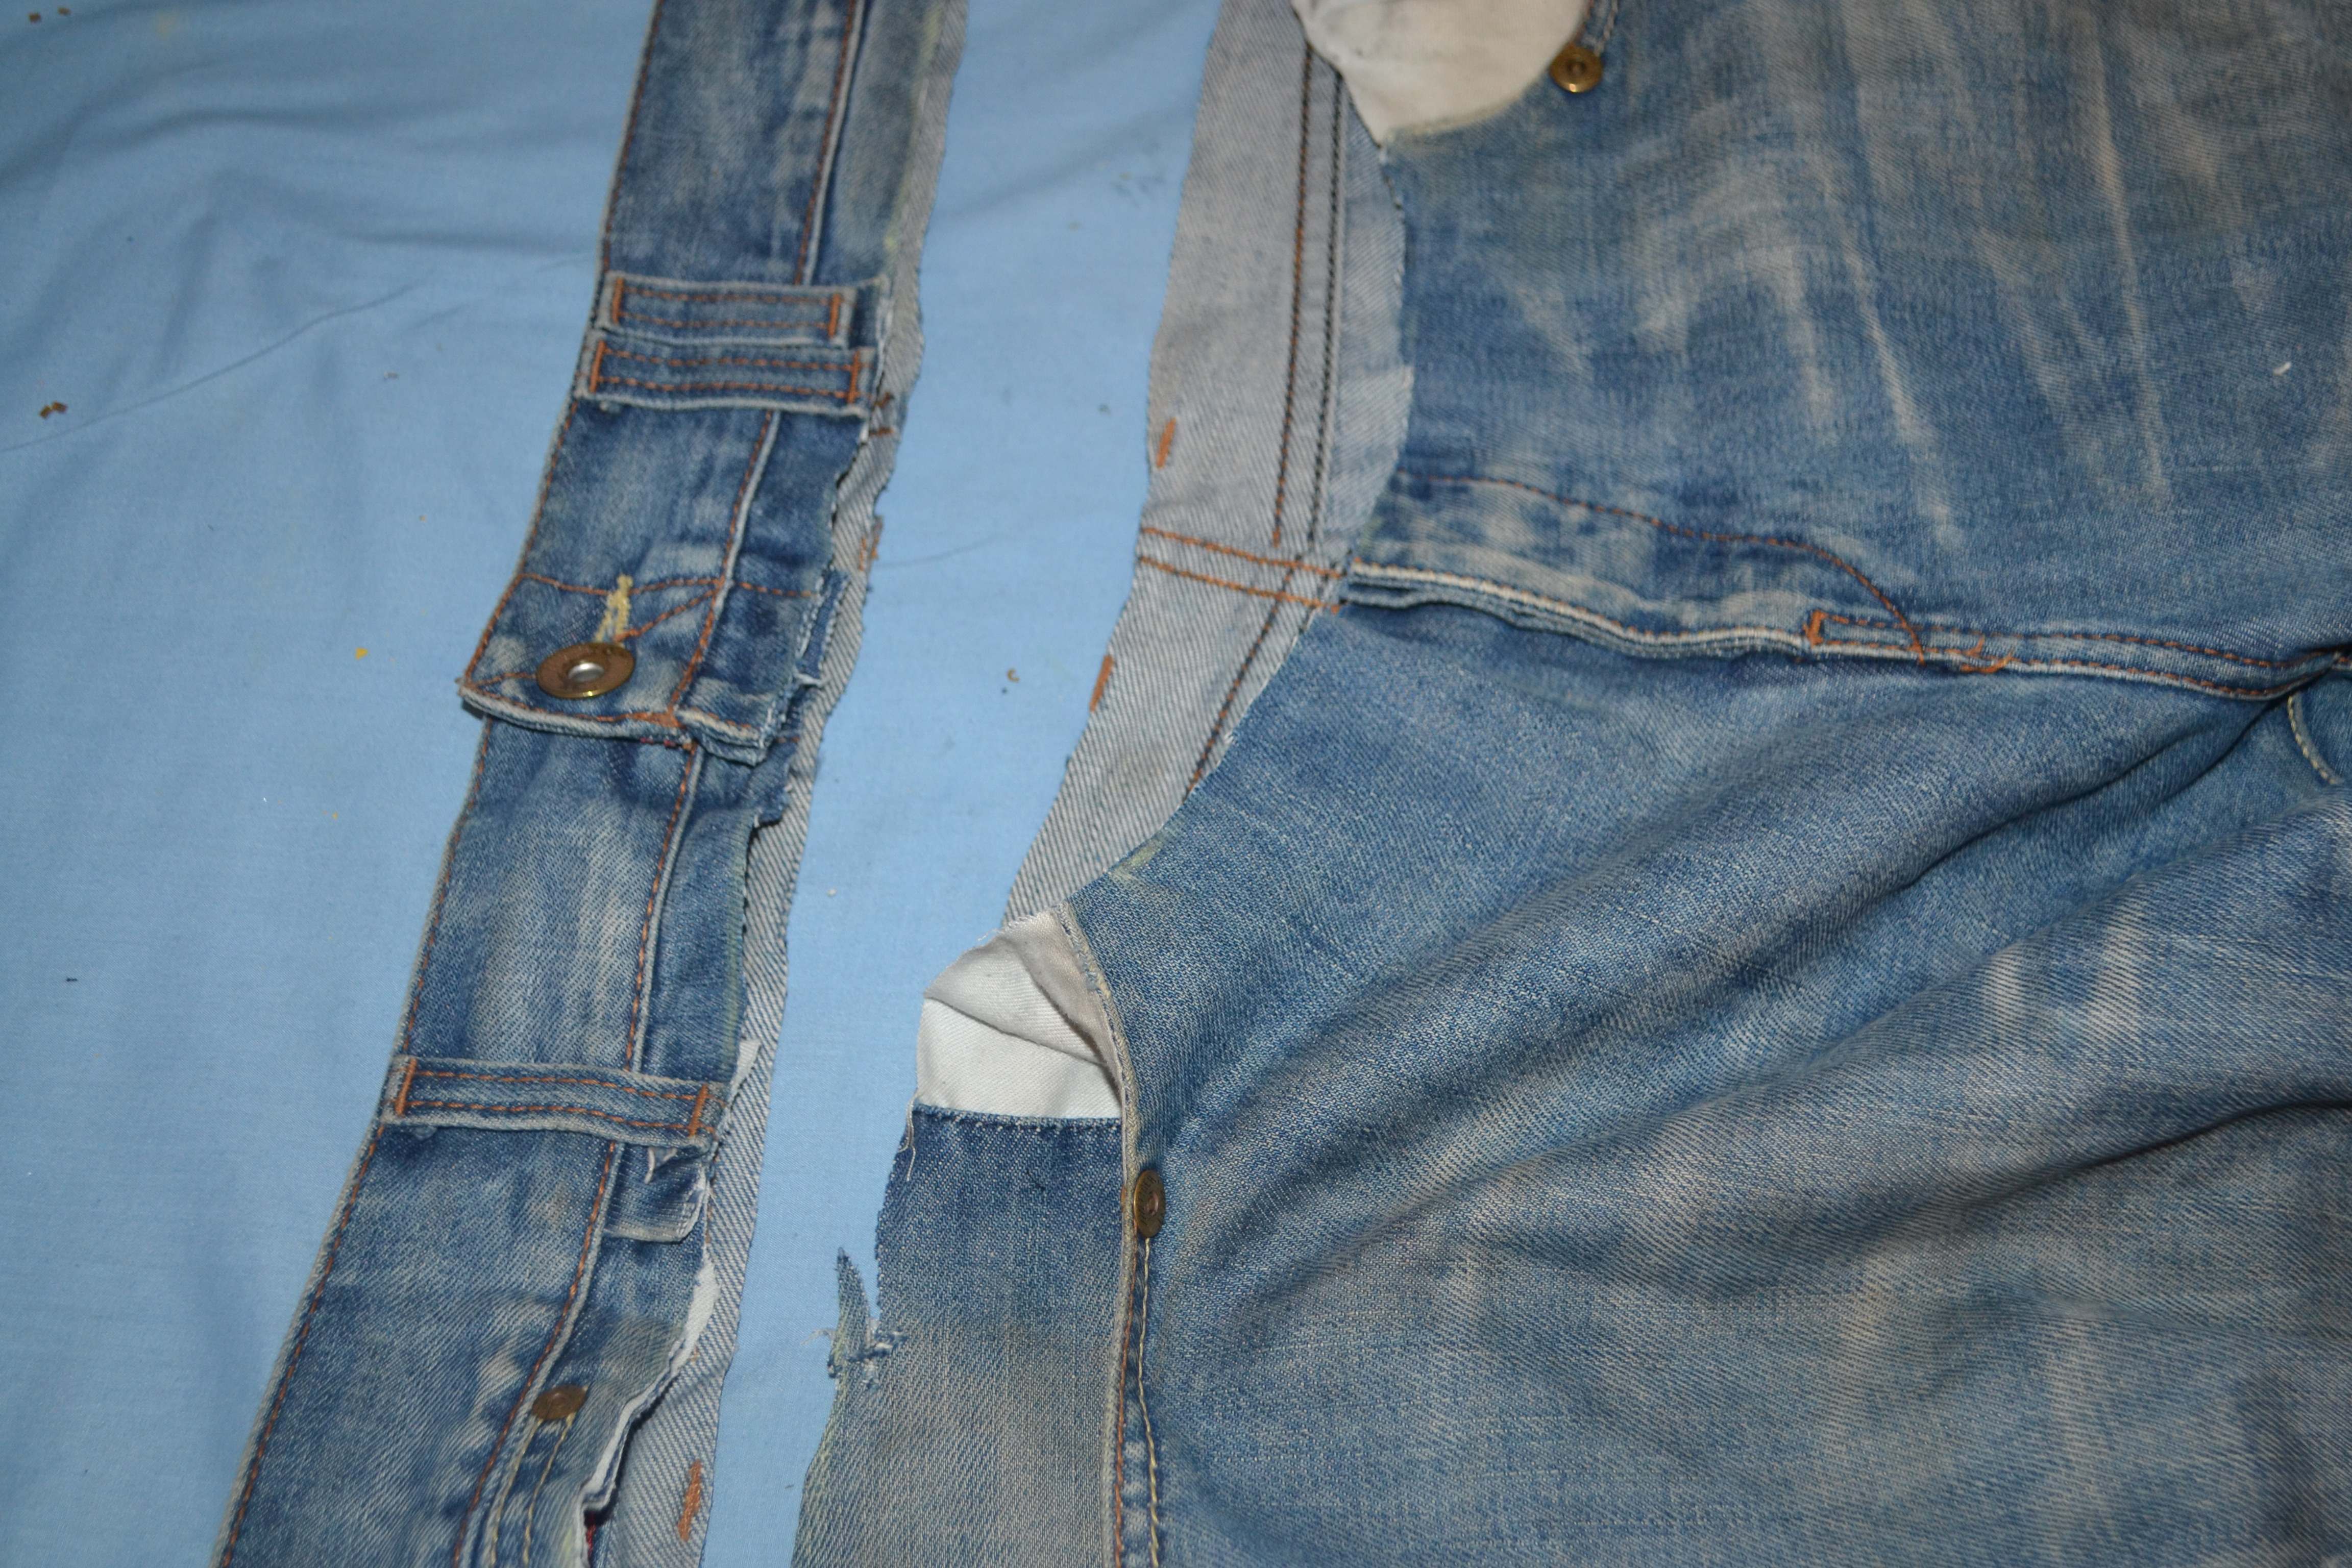 Ways to recycle old jeans - Step 2